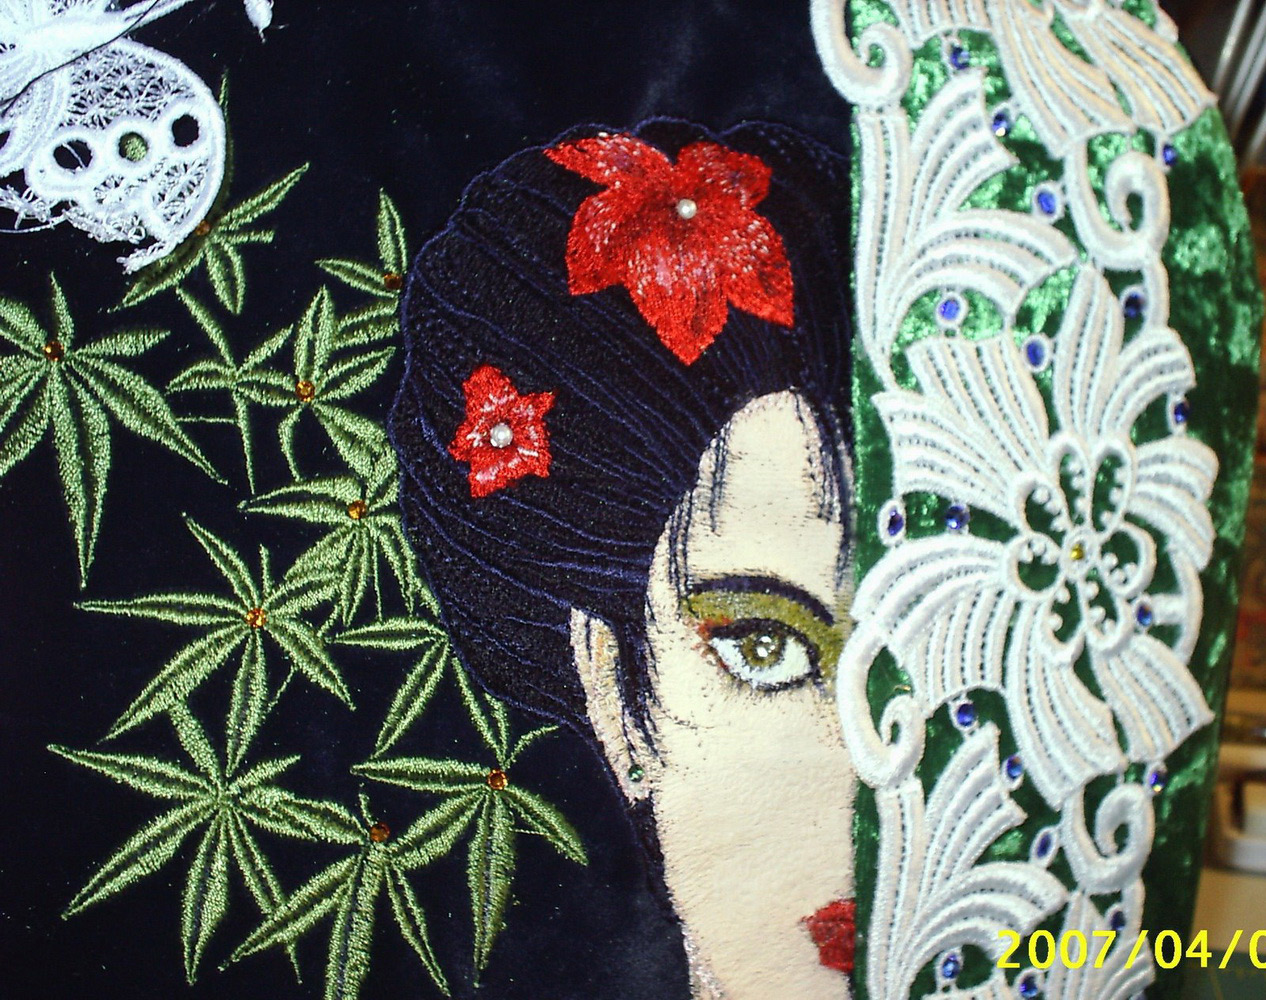 Bag embroidered with geisha design